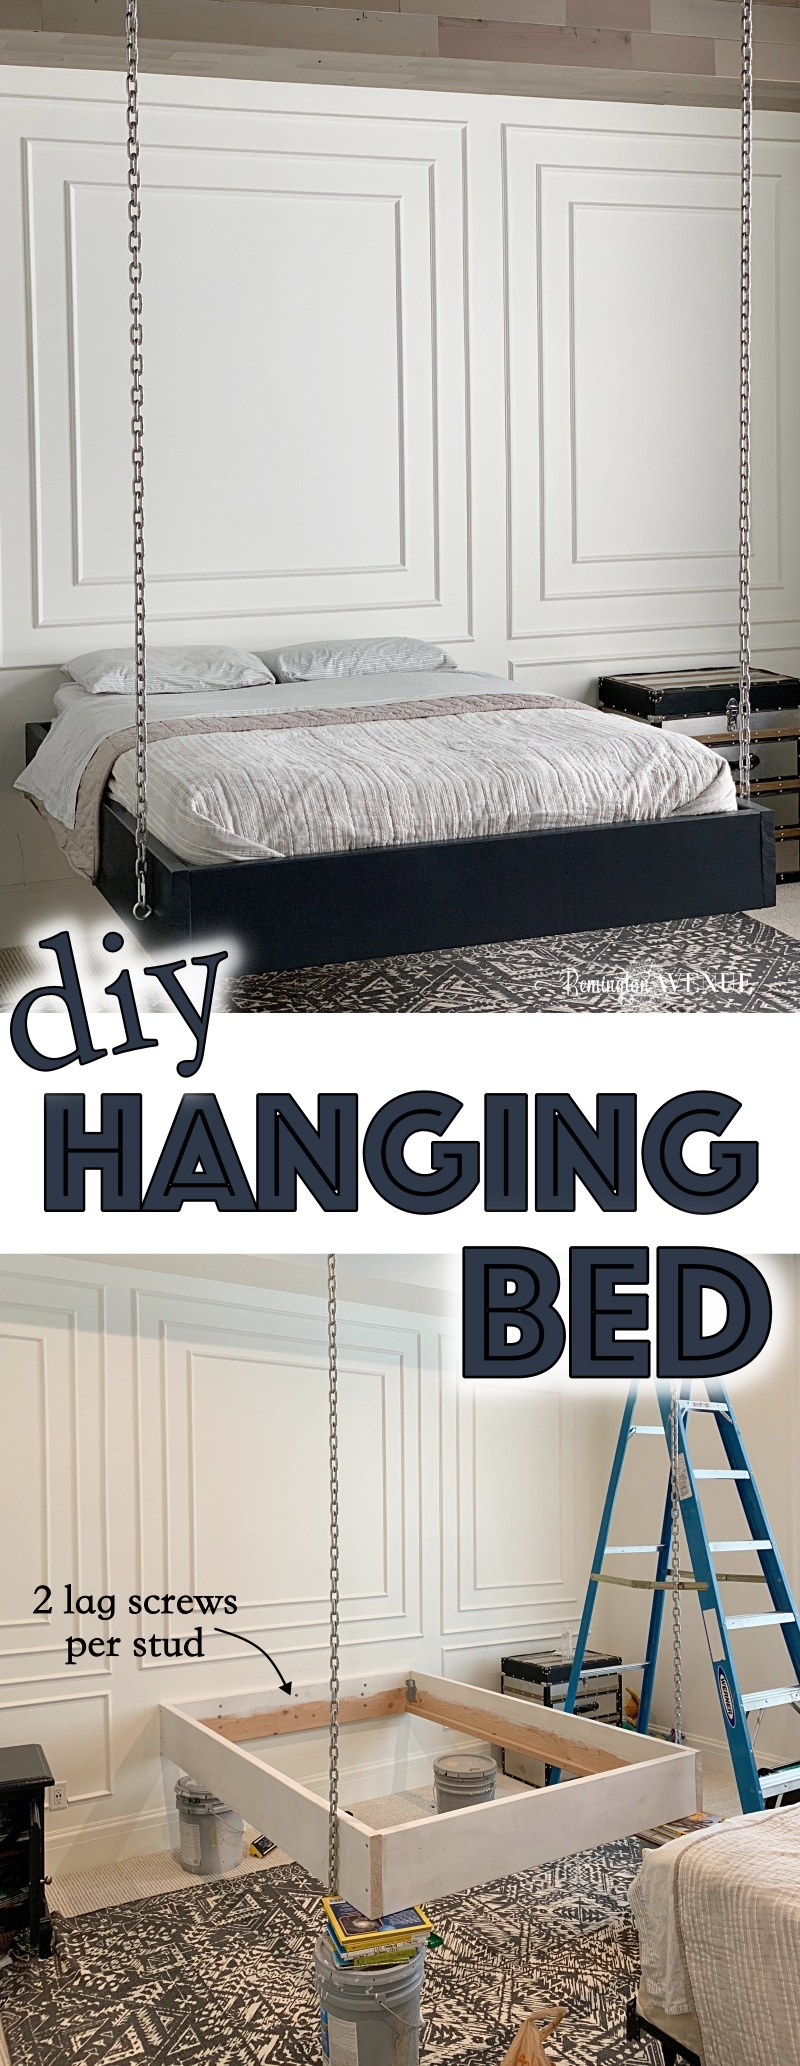 how to build a suspended bed - hanging bed